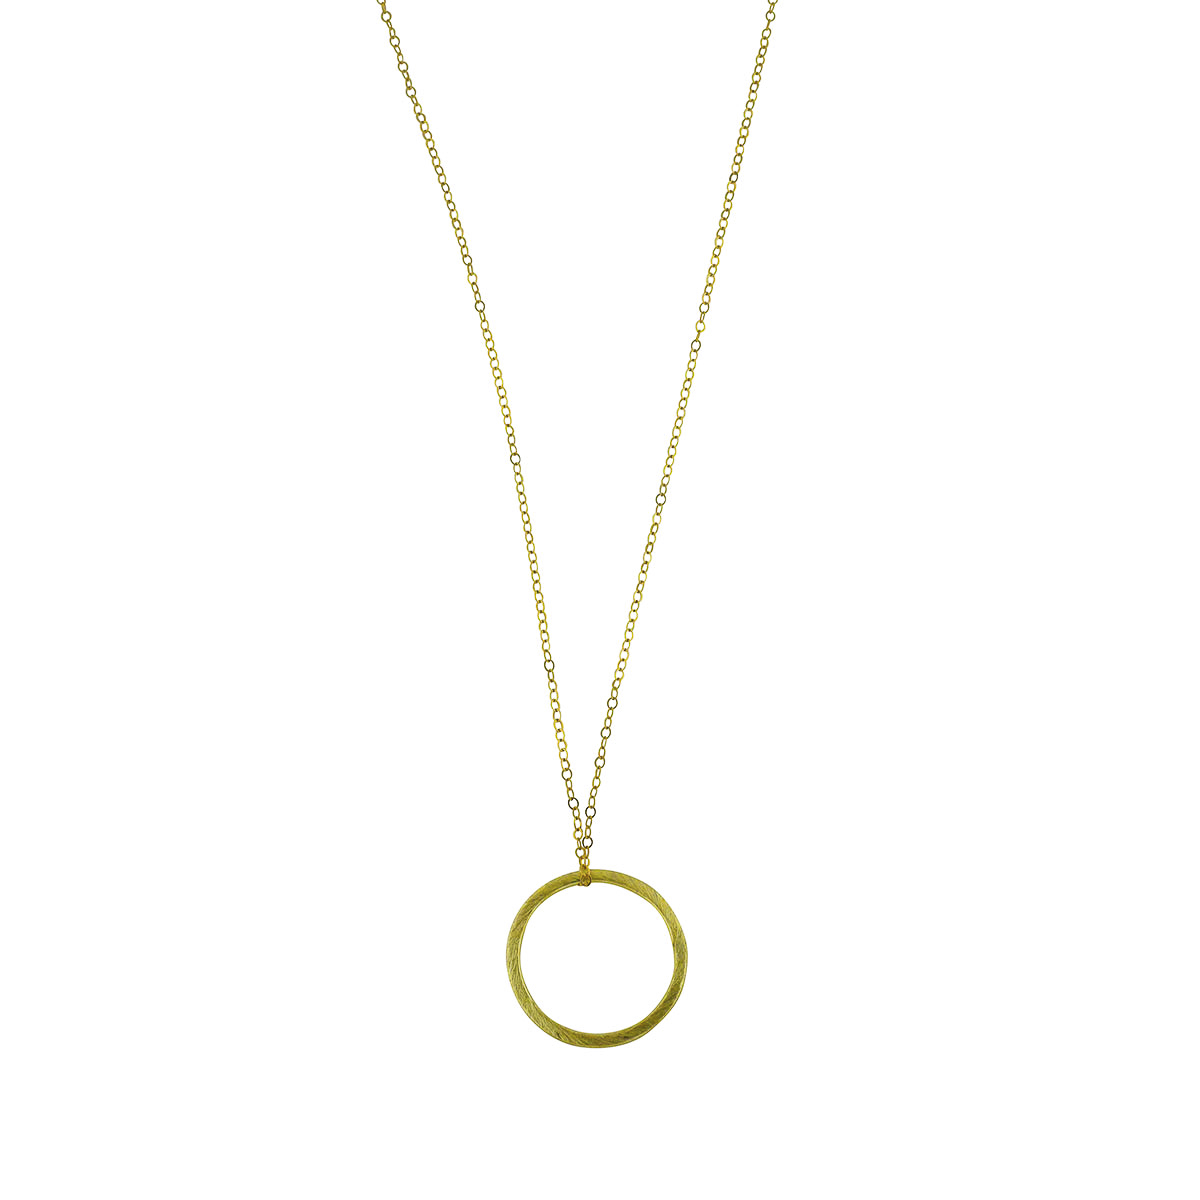 Circle Of Life Pendant Hammered circle pendant necklace susan ankersen jewelry circle of life pendant necklace audiocablefo